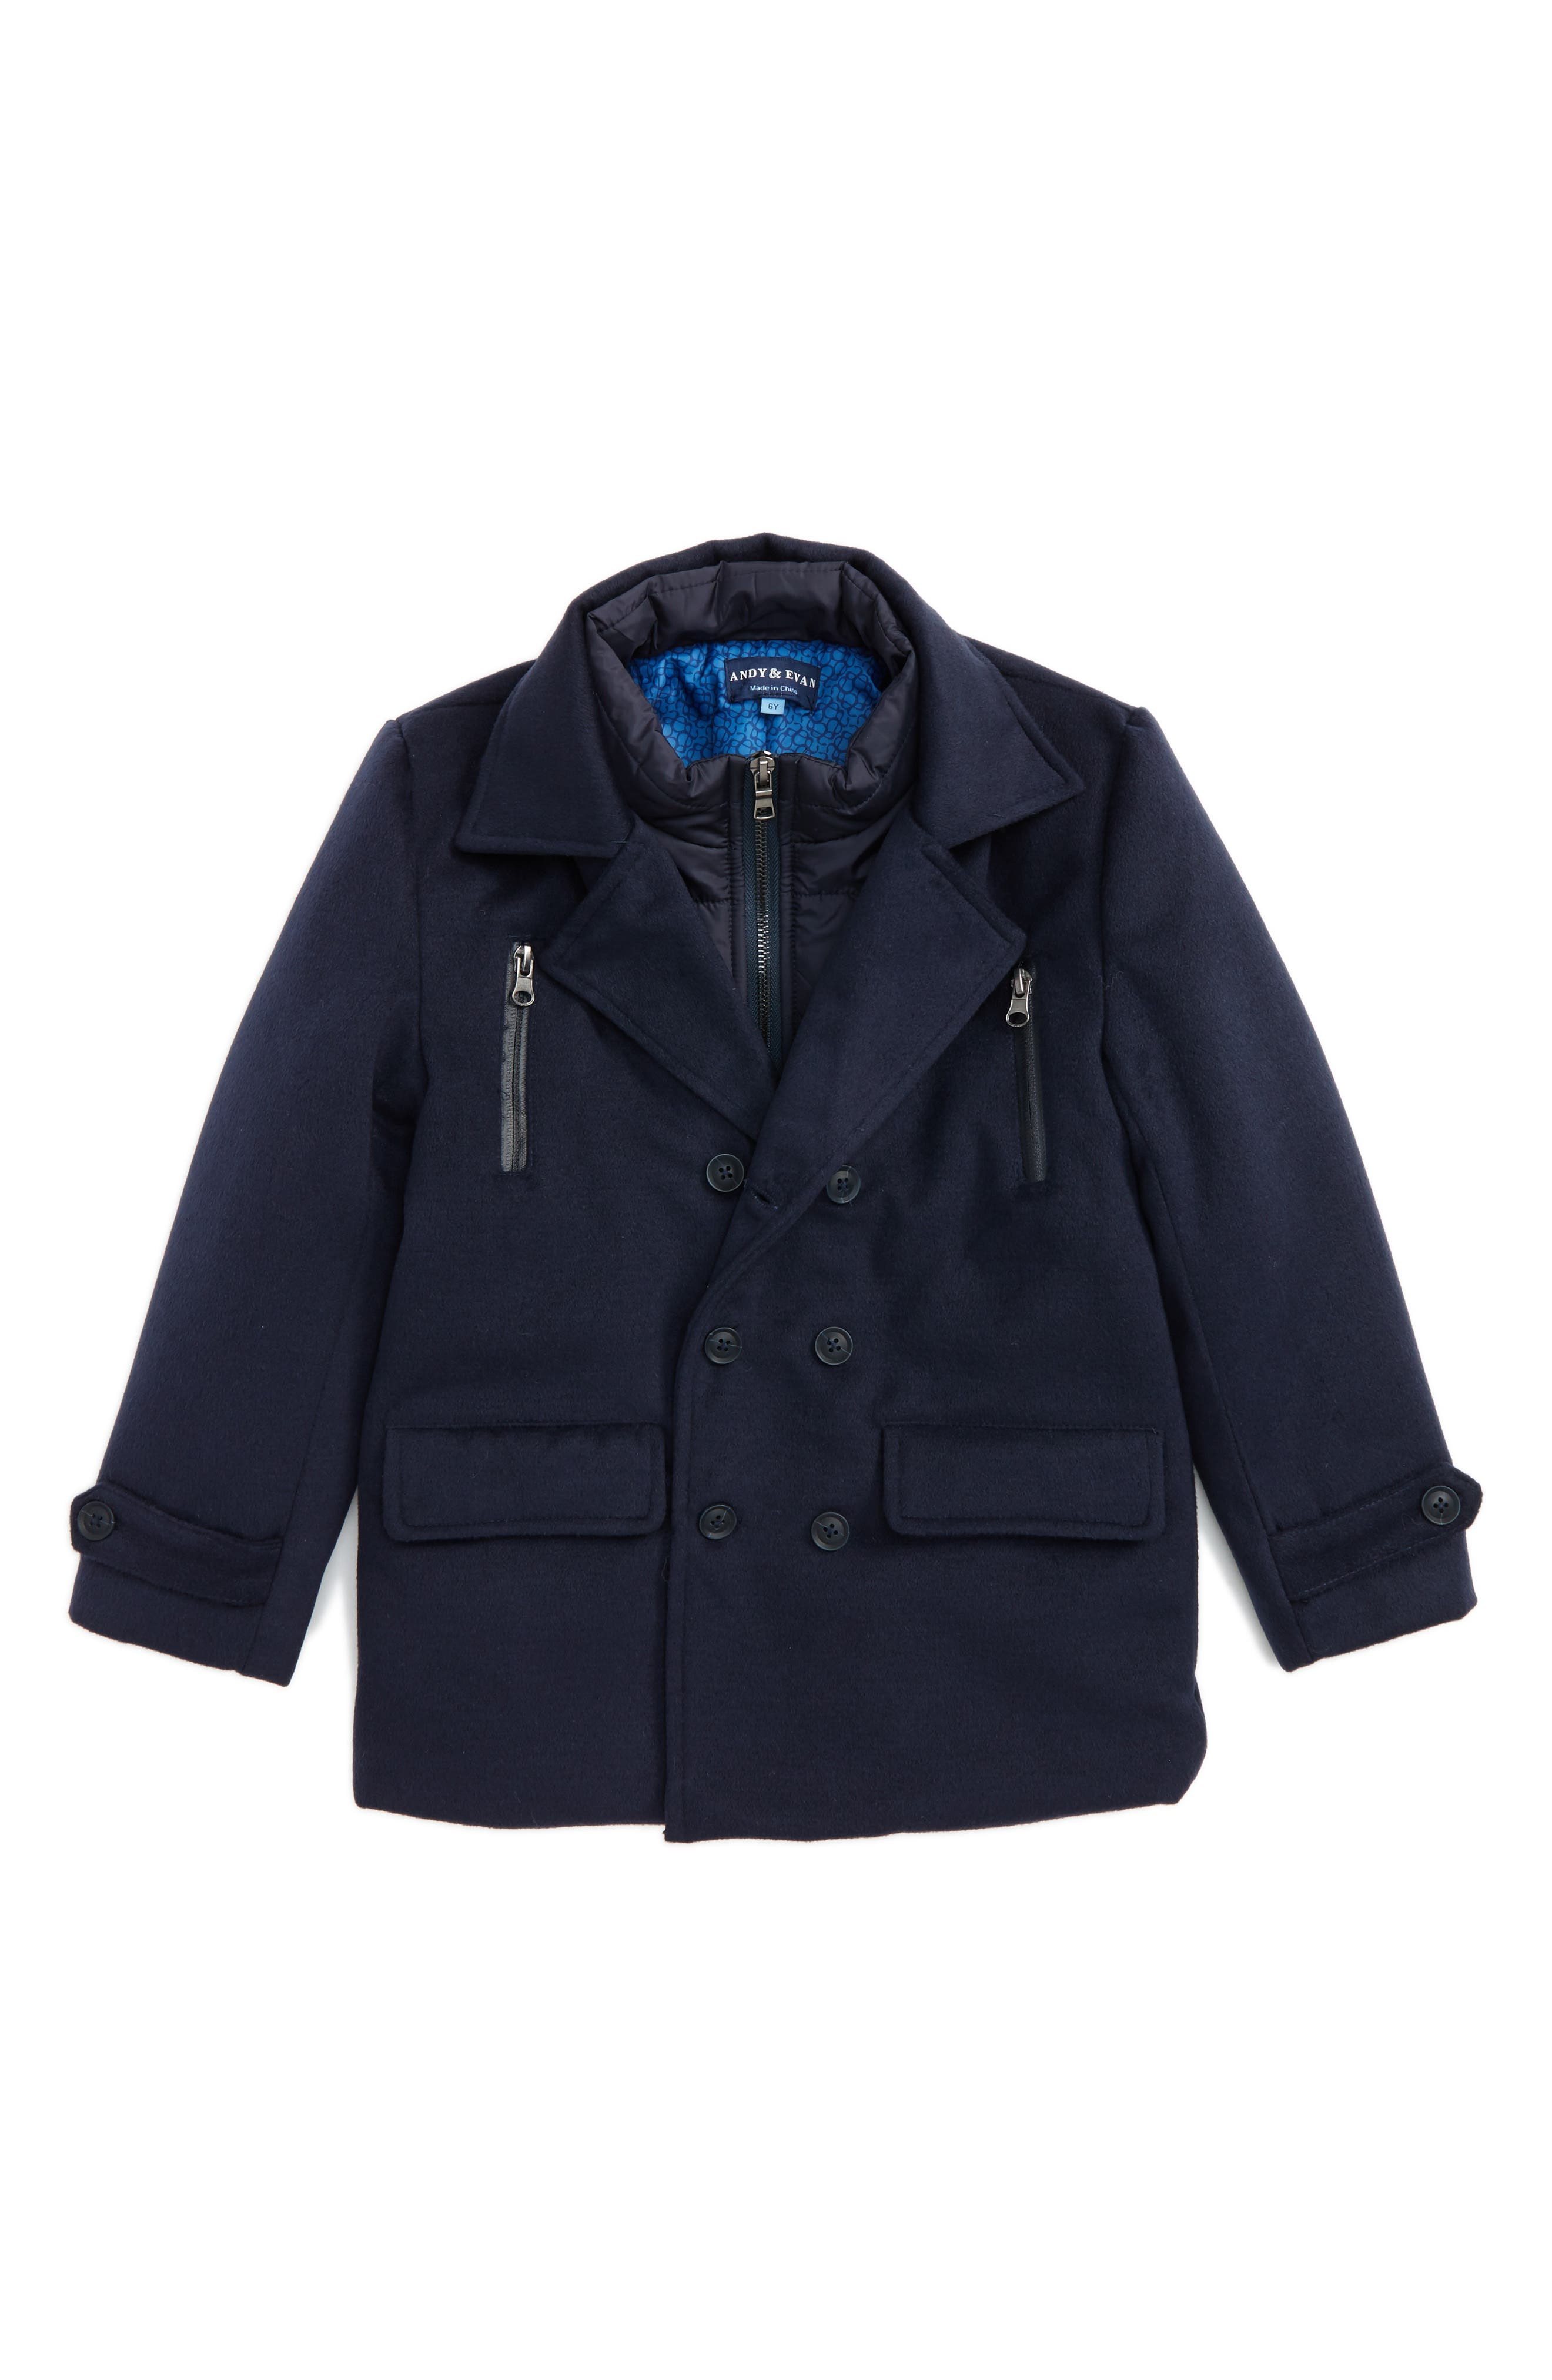 Double Breasted Peacoat,                         Main,                         color, Navy